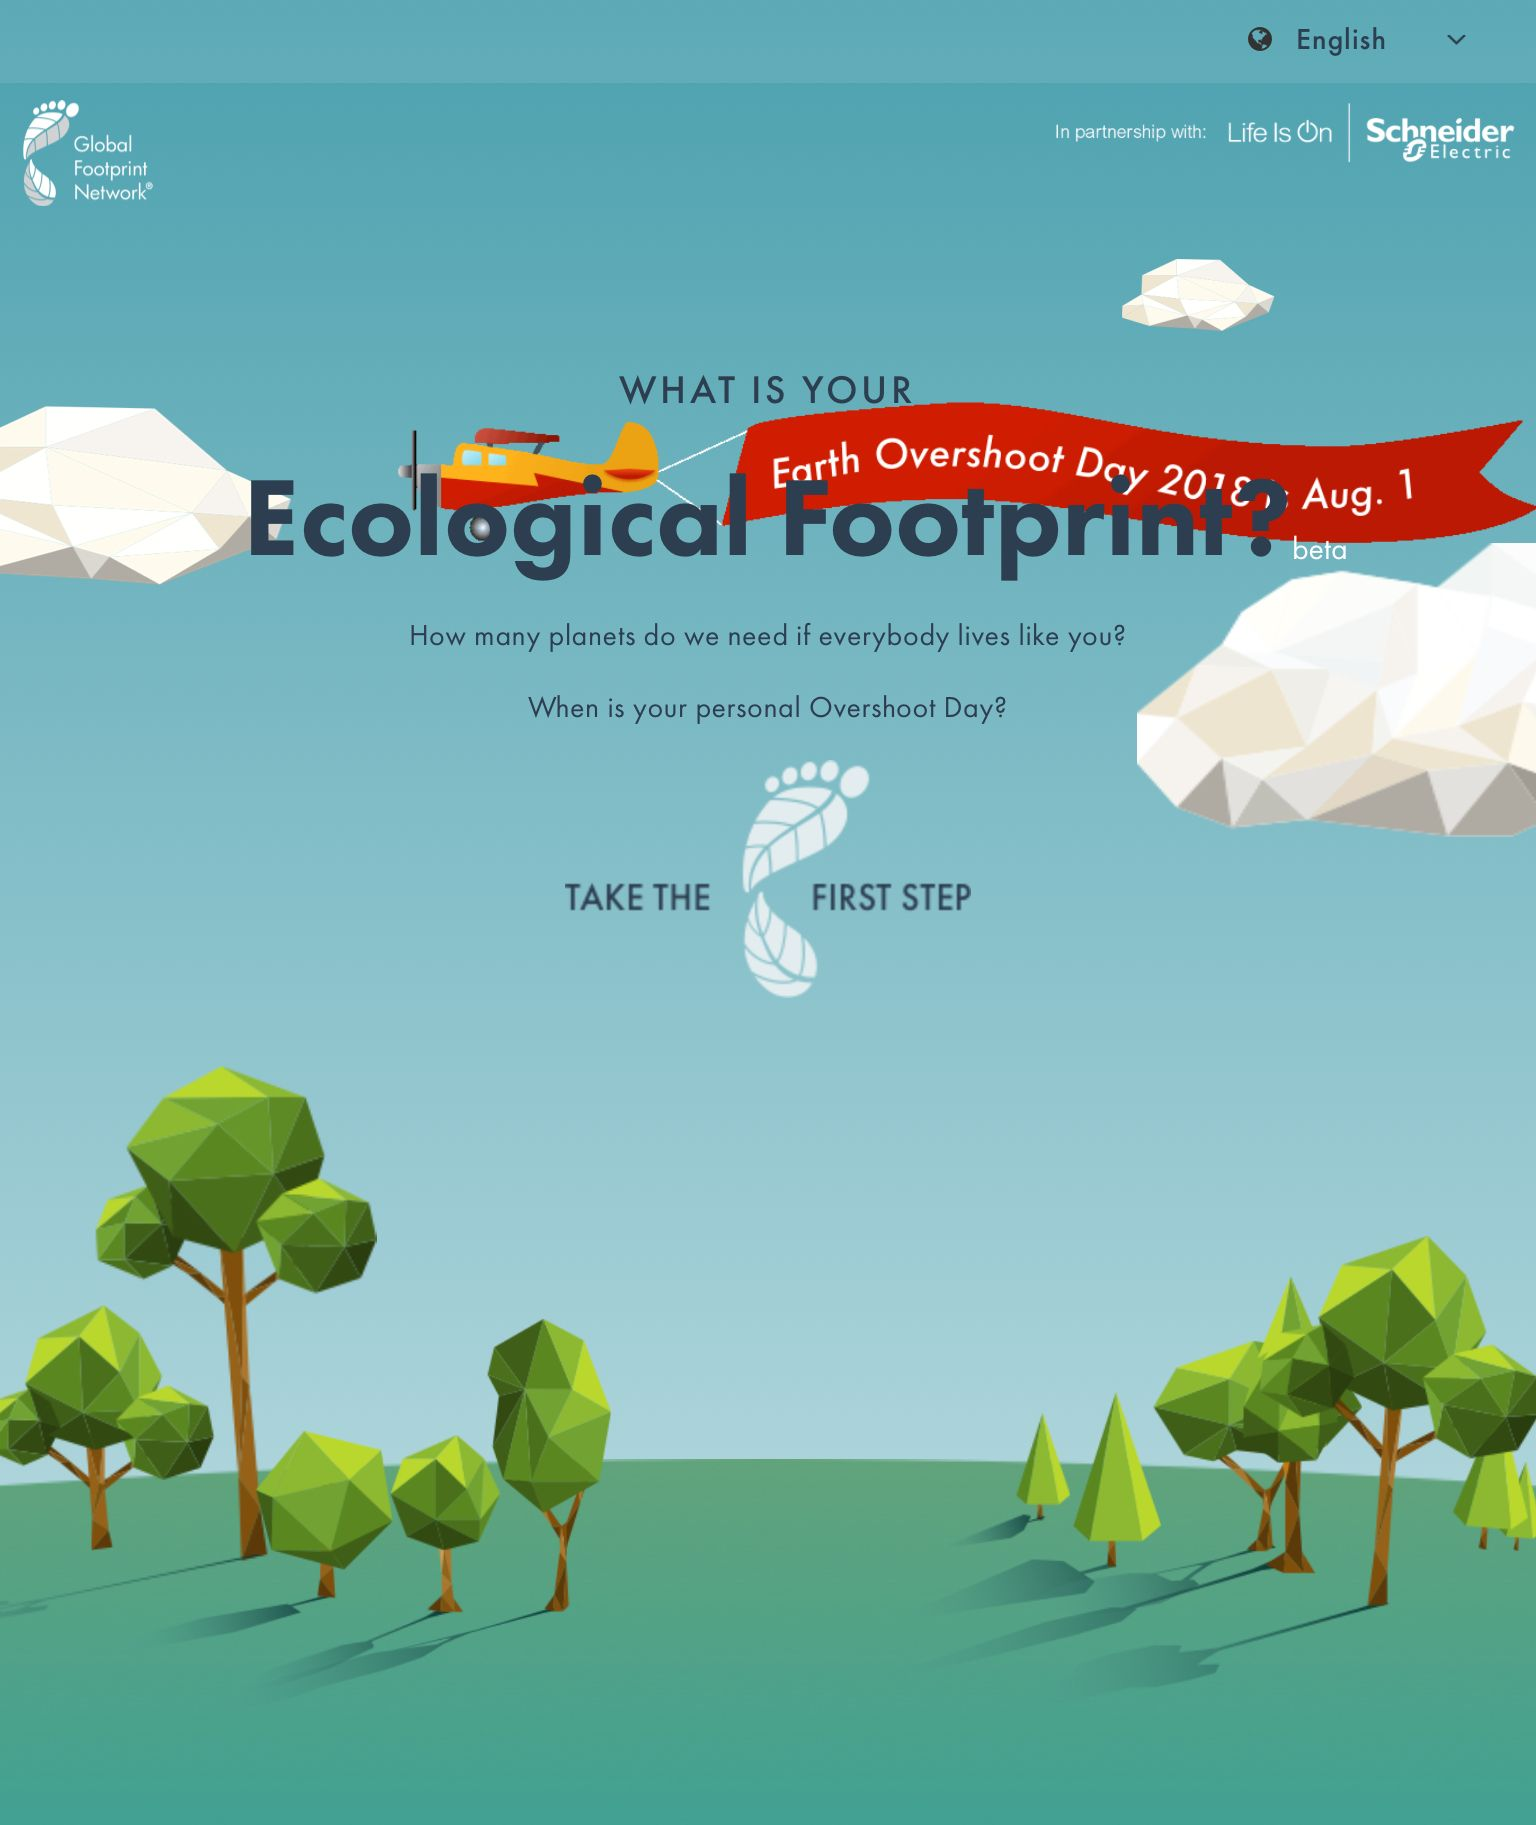 Footprint Calculator Web Page Monday June 10 2019 Planets Take The First Step How To Find Out